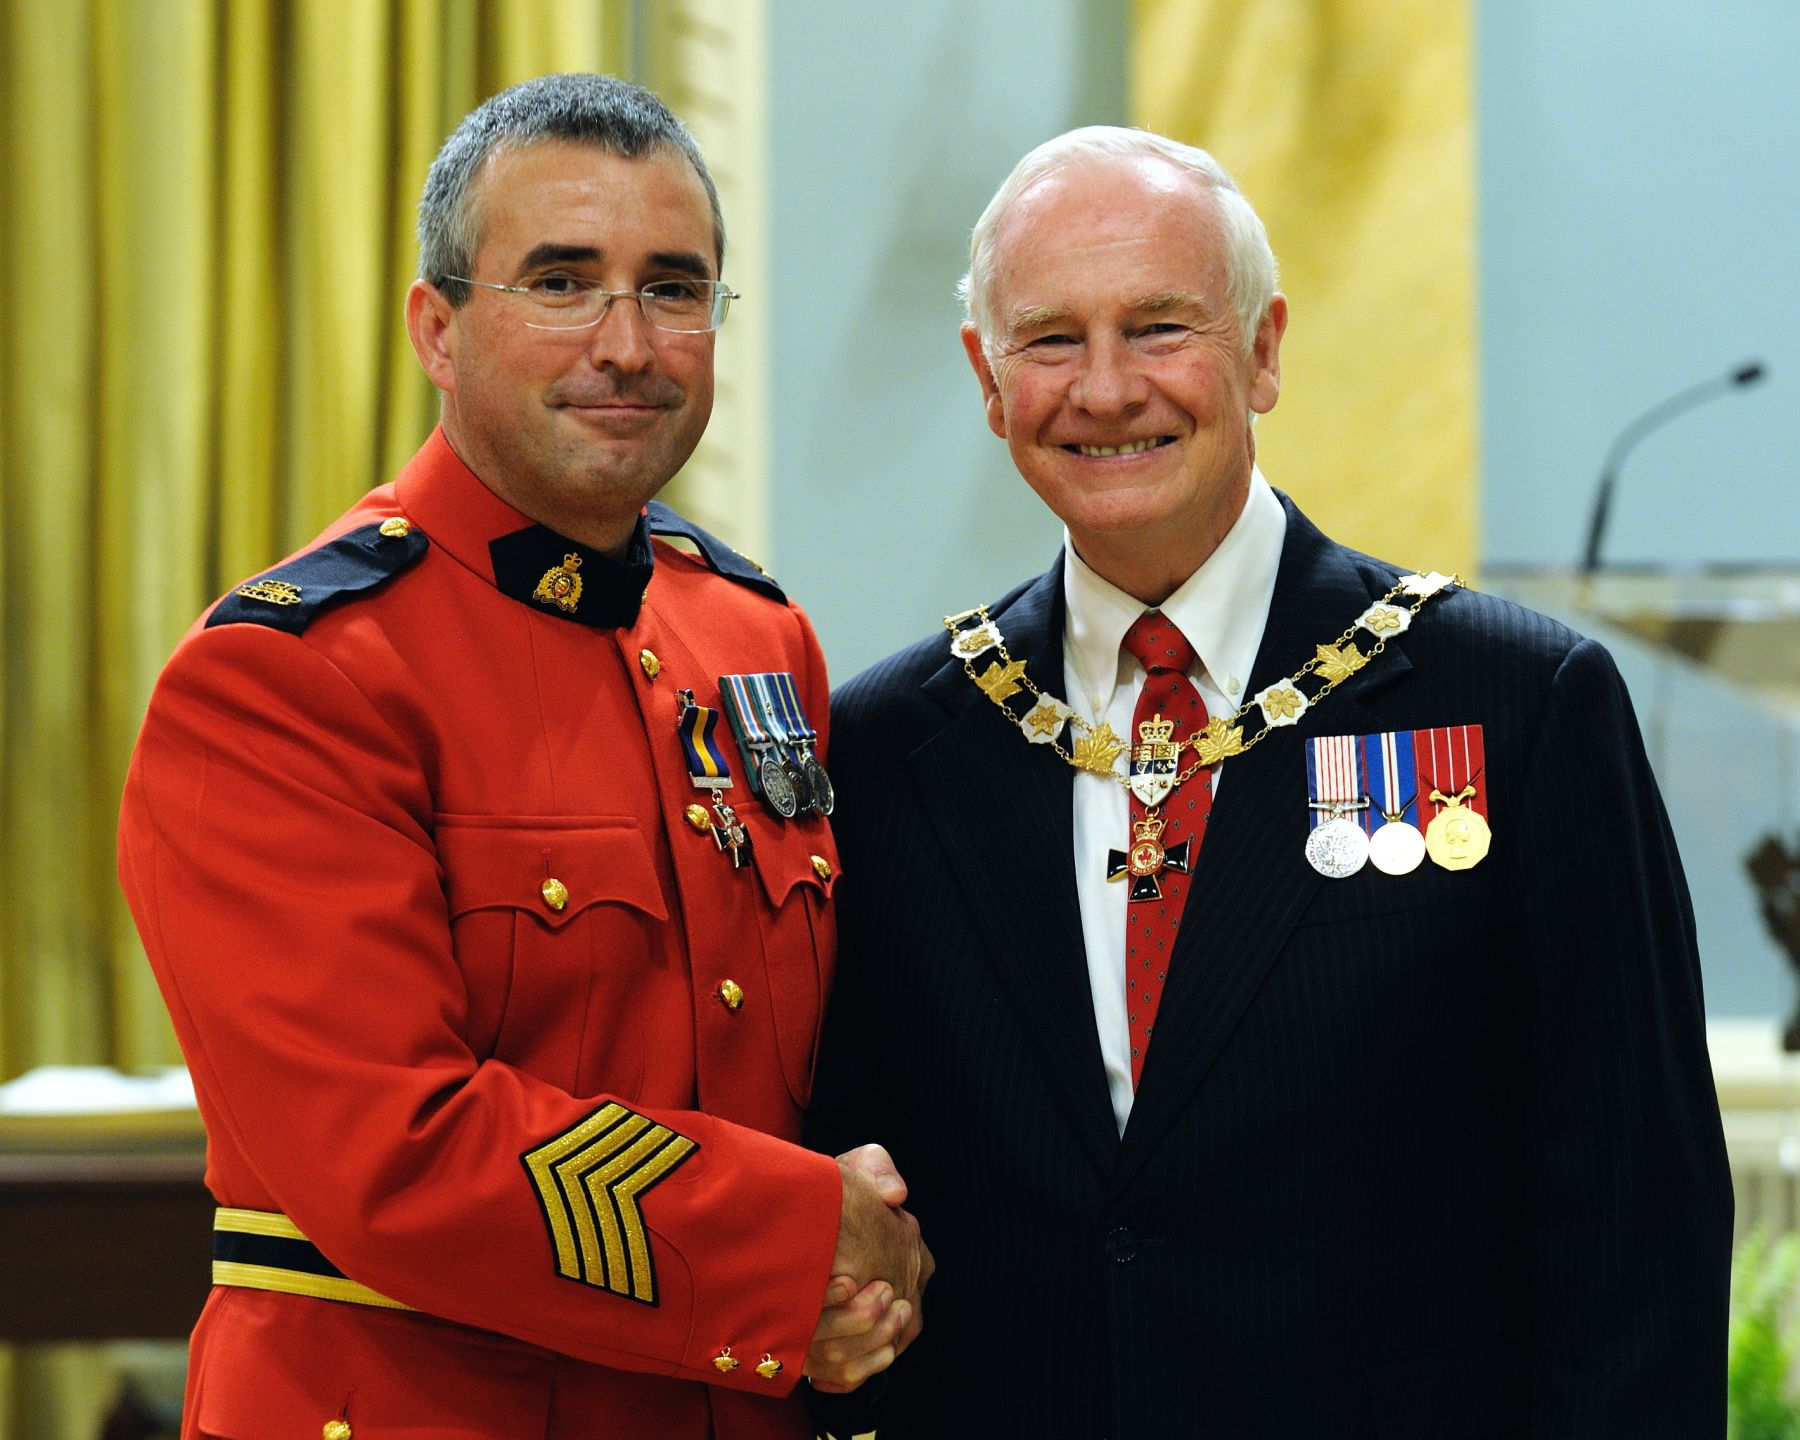 His Excellency presented the Order of Merit of the Police Forces at the Member level (M.O.M.) to Staff Sergeant Stéphane St-Jacques, M.O.M., of the Royal Canadian Mounted Police, Ottawa, Ontario.